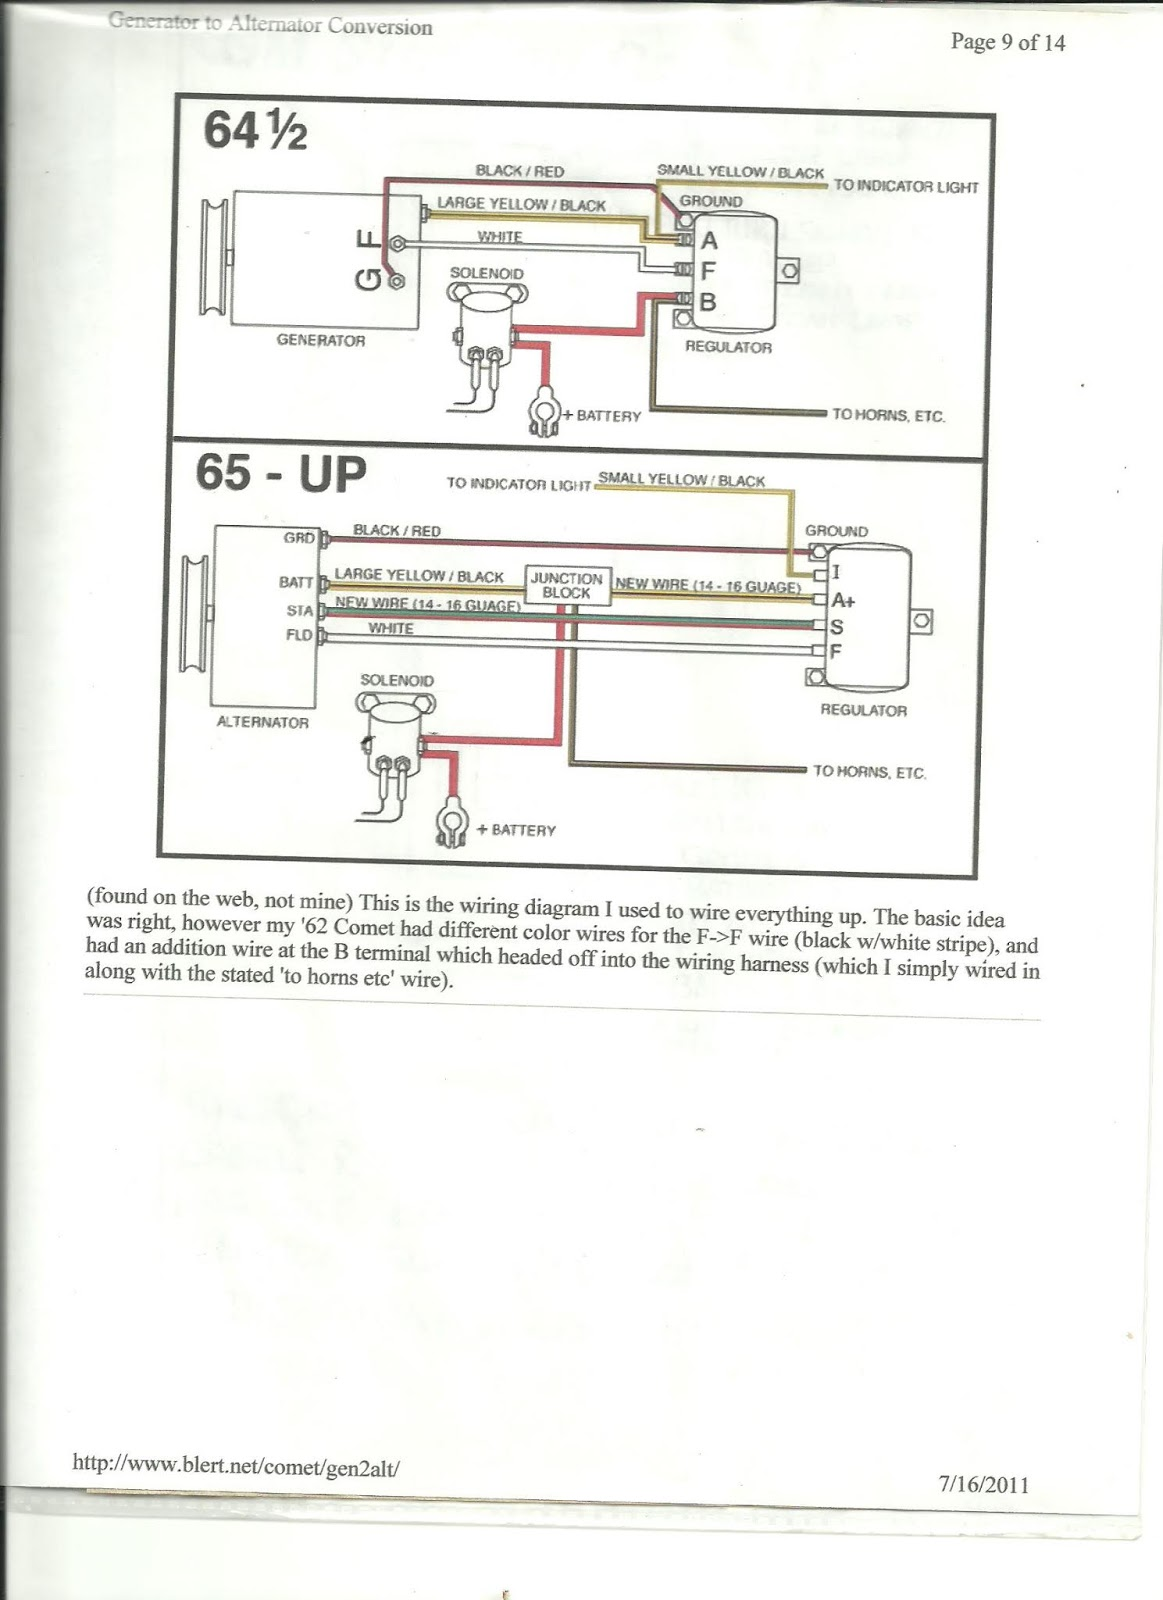 62 ford generator wiring diagram explained wiring diagrams 1979 ford alternator wiring diagram ford generator wiring [ 1163 x 1600 Pixel ]